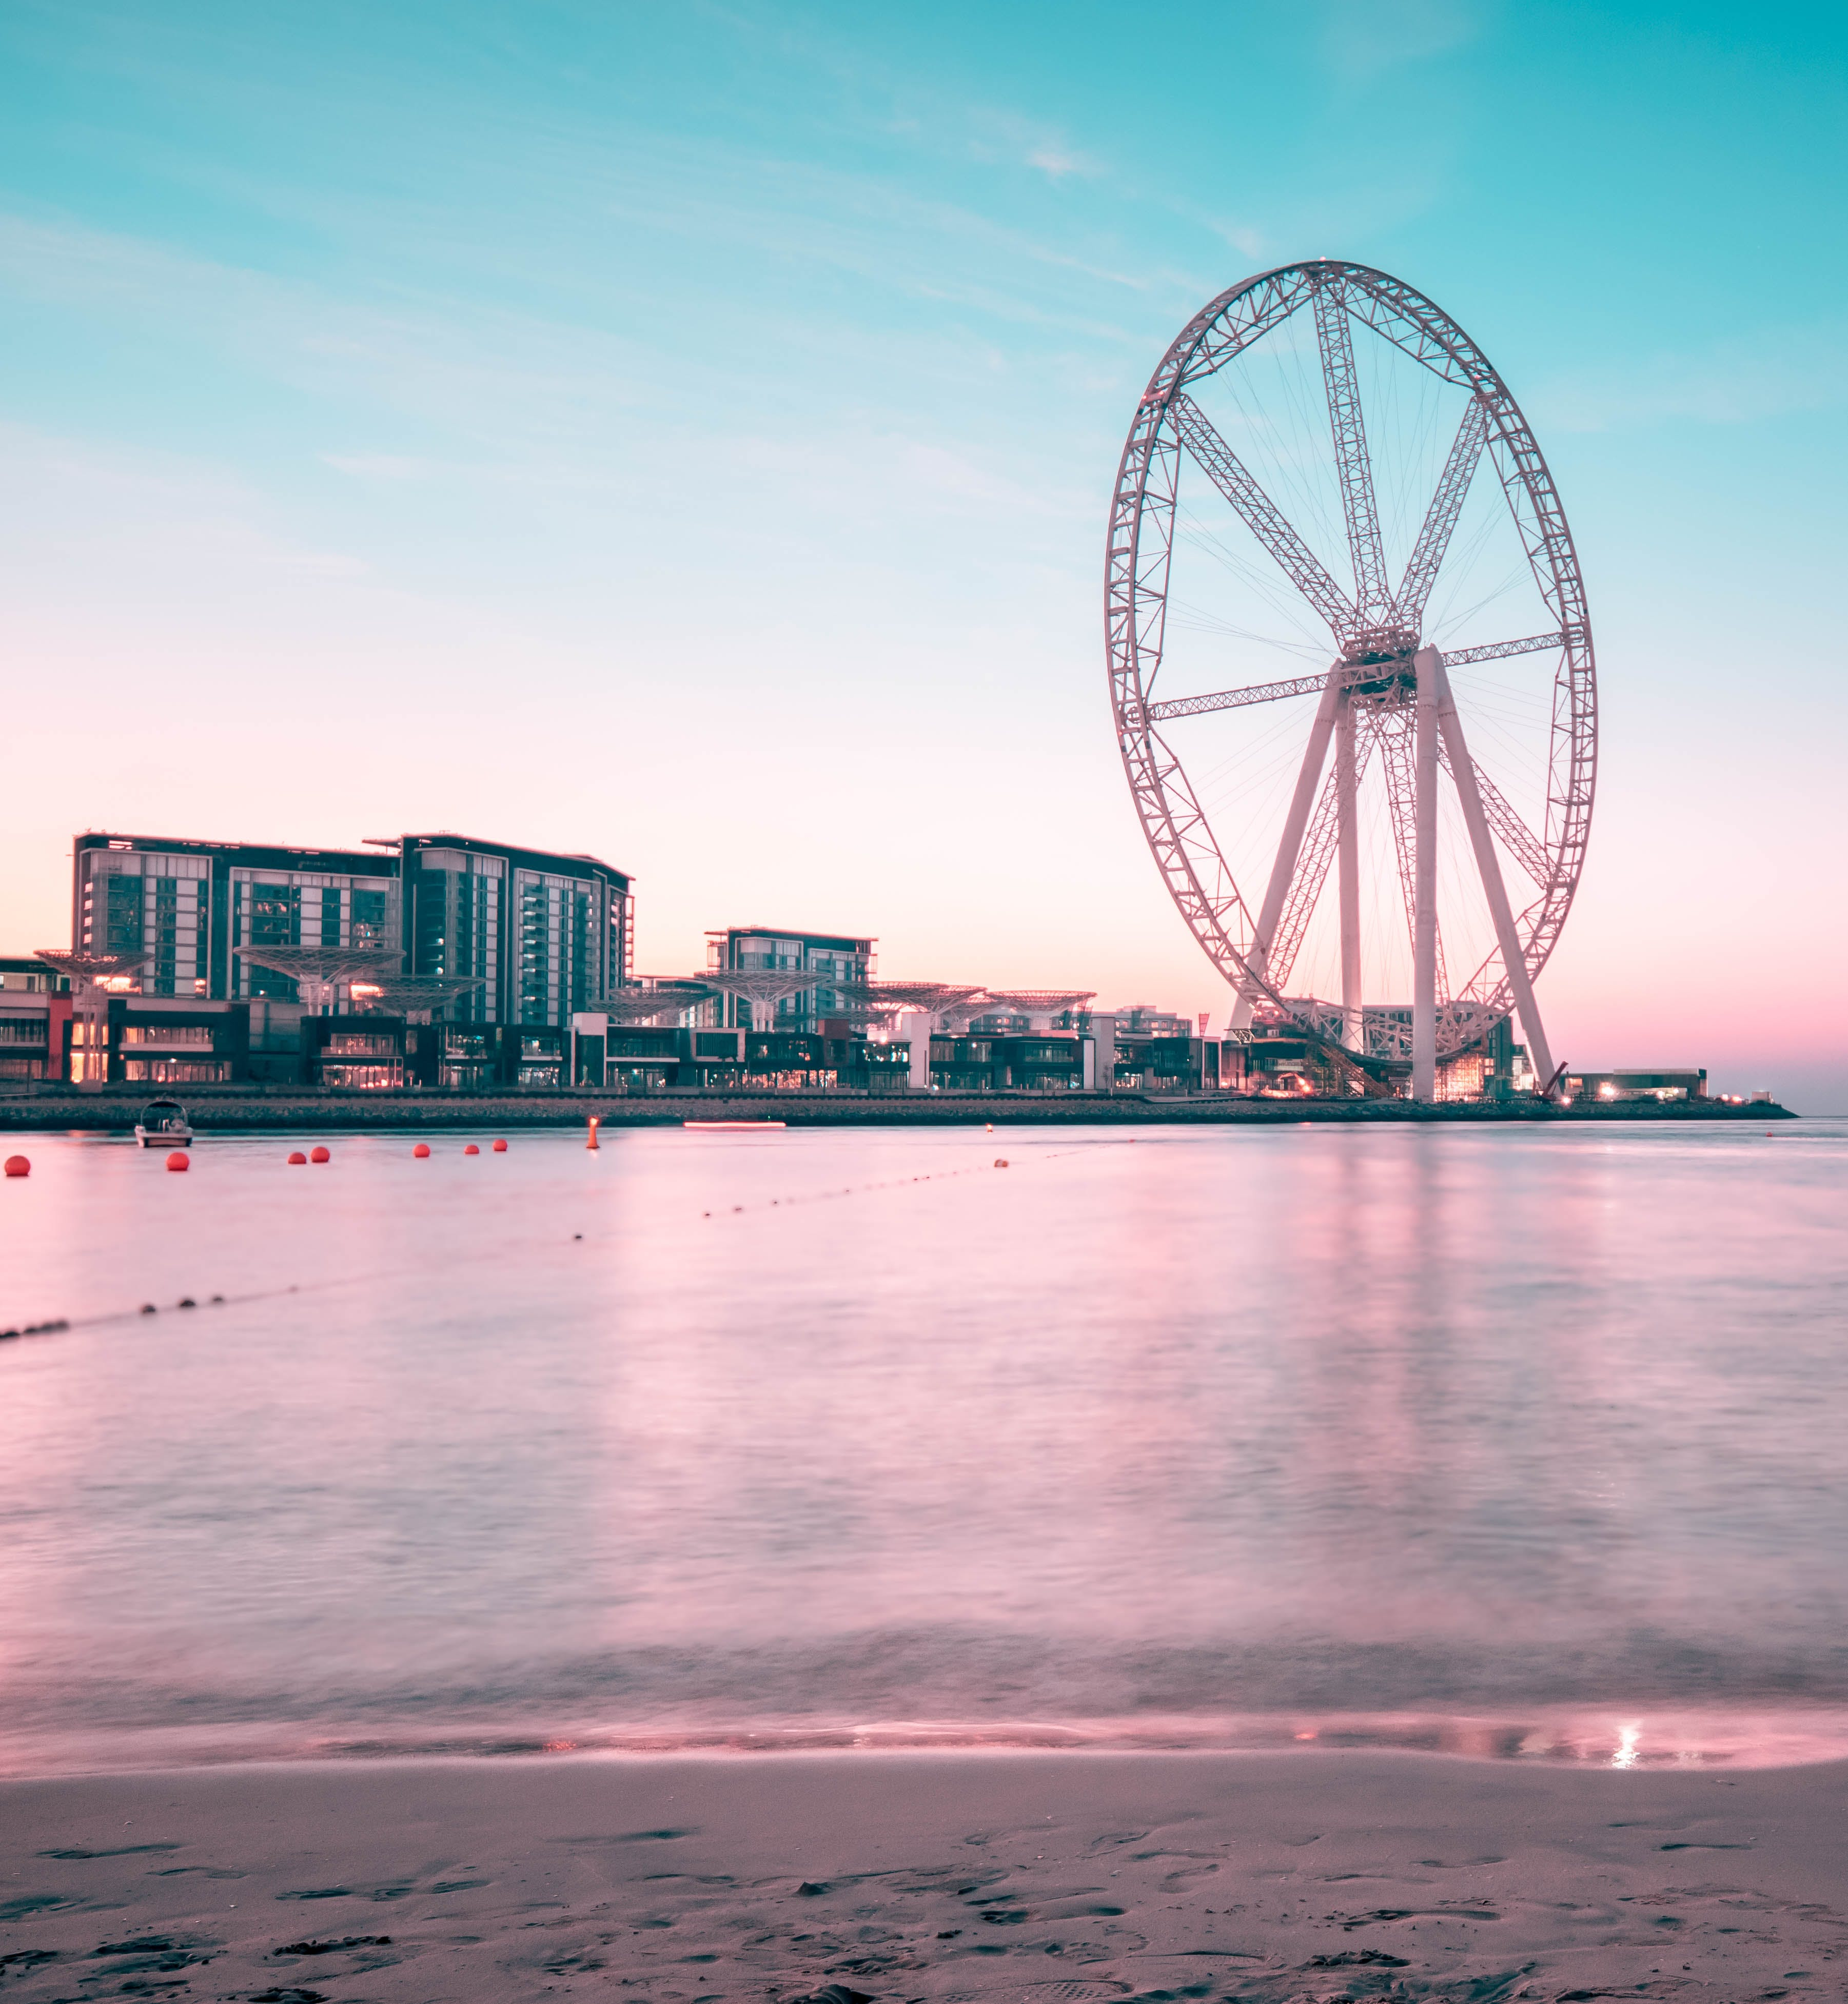 Ferris Wheel Near Body of Water and High Rise Building